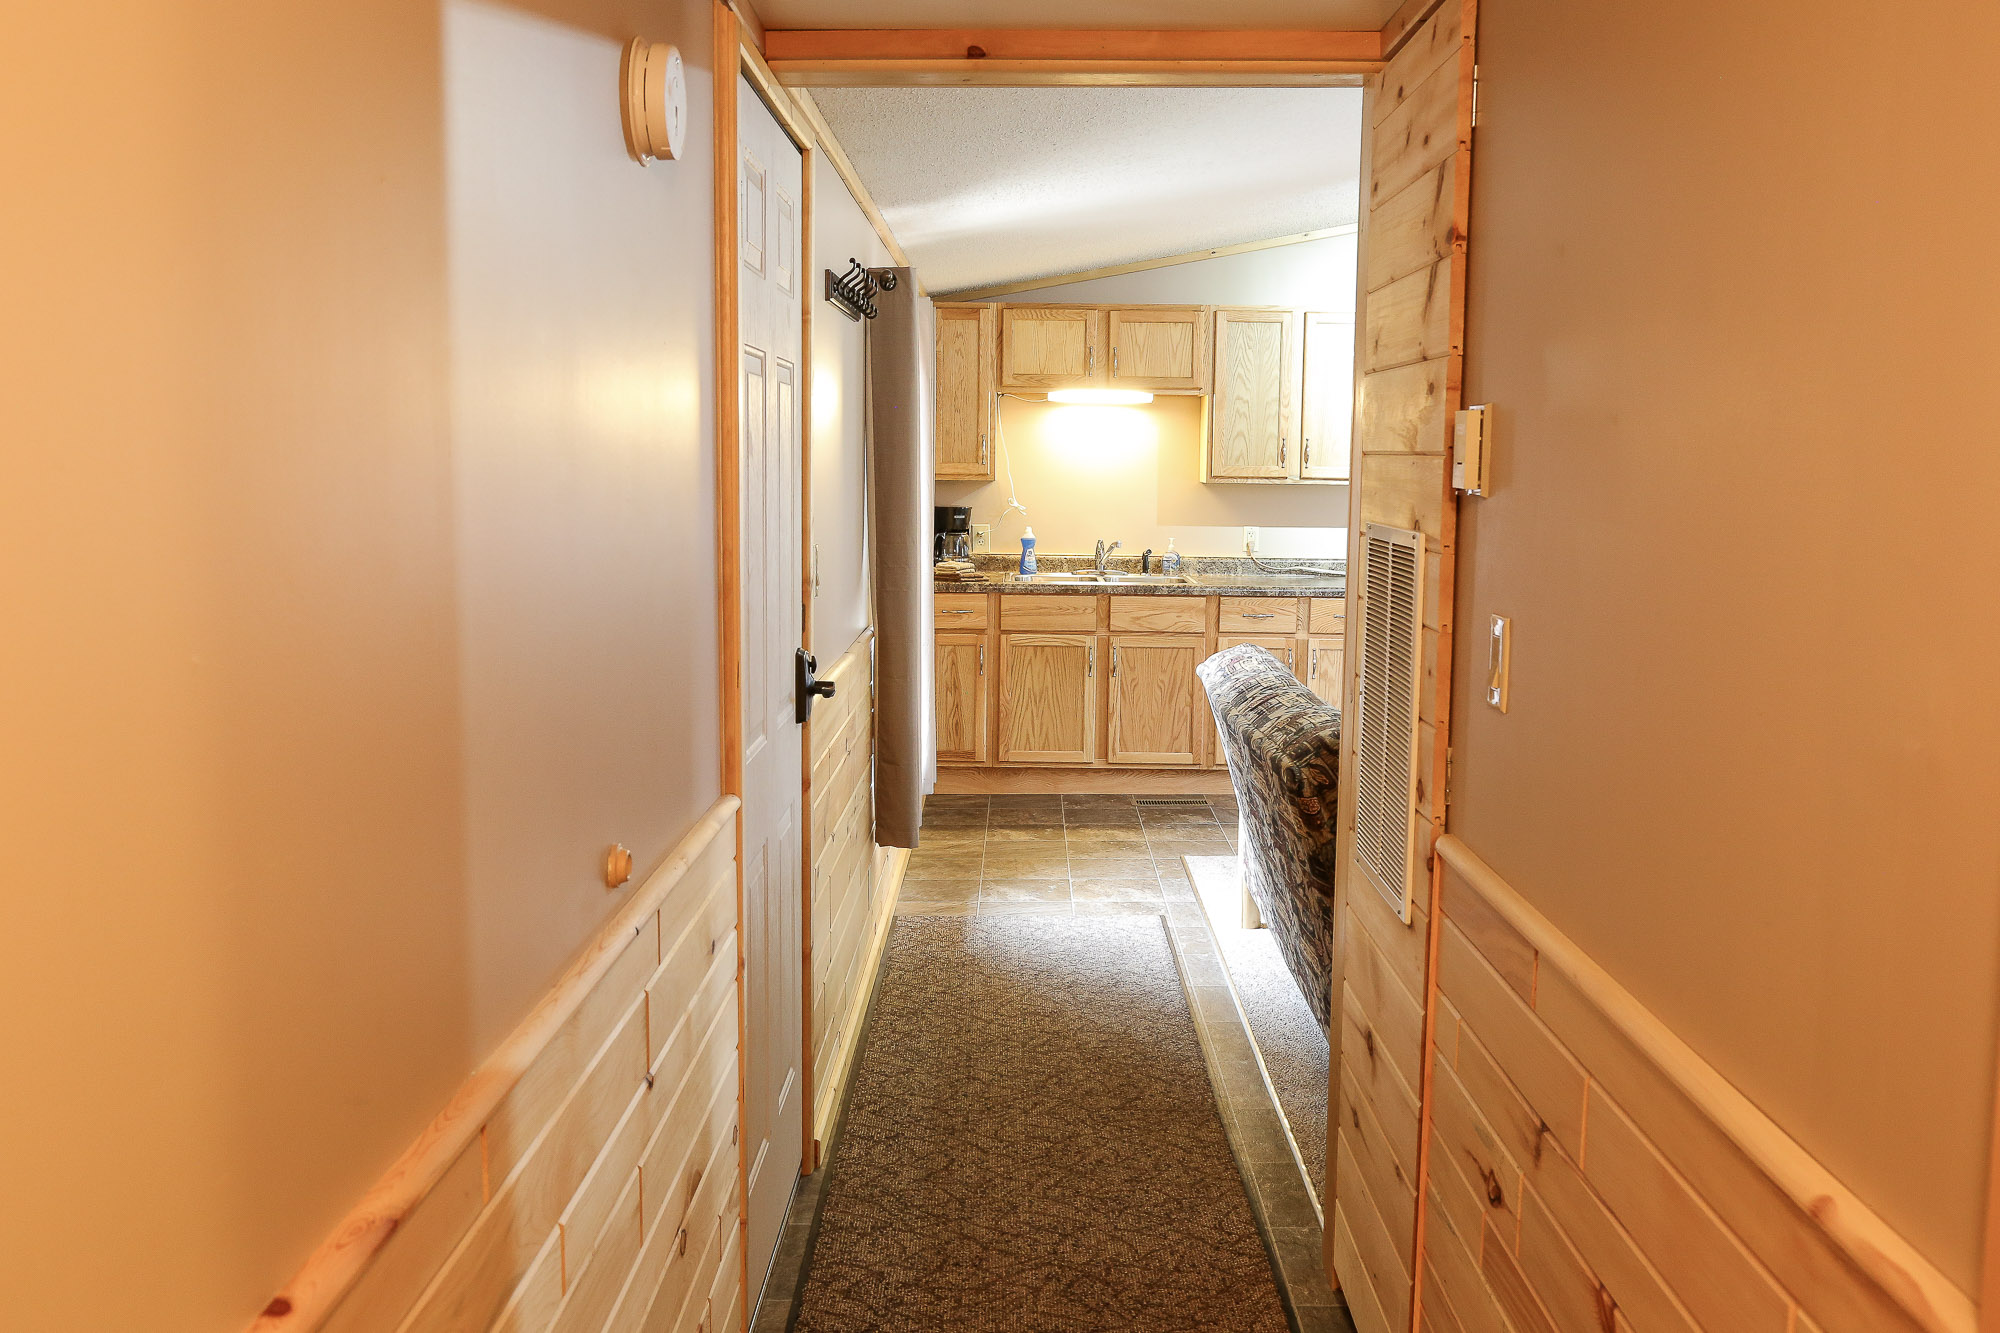 Photo of Duplex A Lodging at the Wilderness Resort in Lac La Belle Michigan